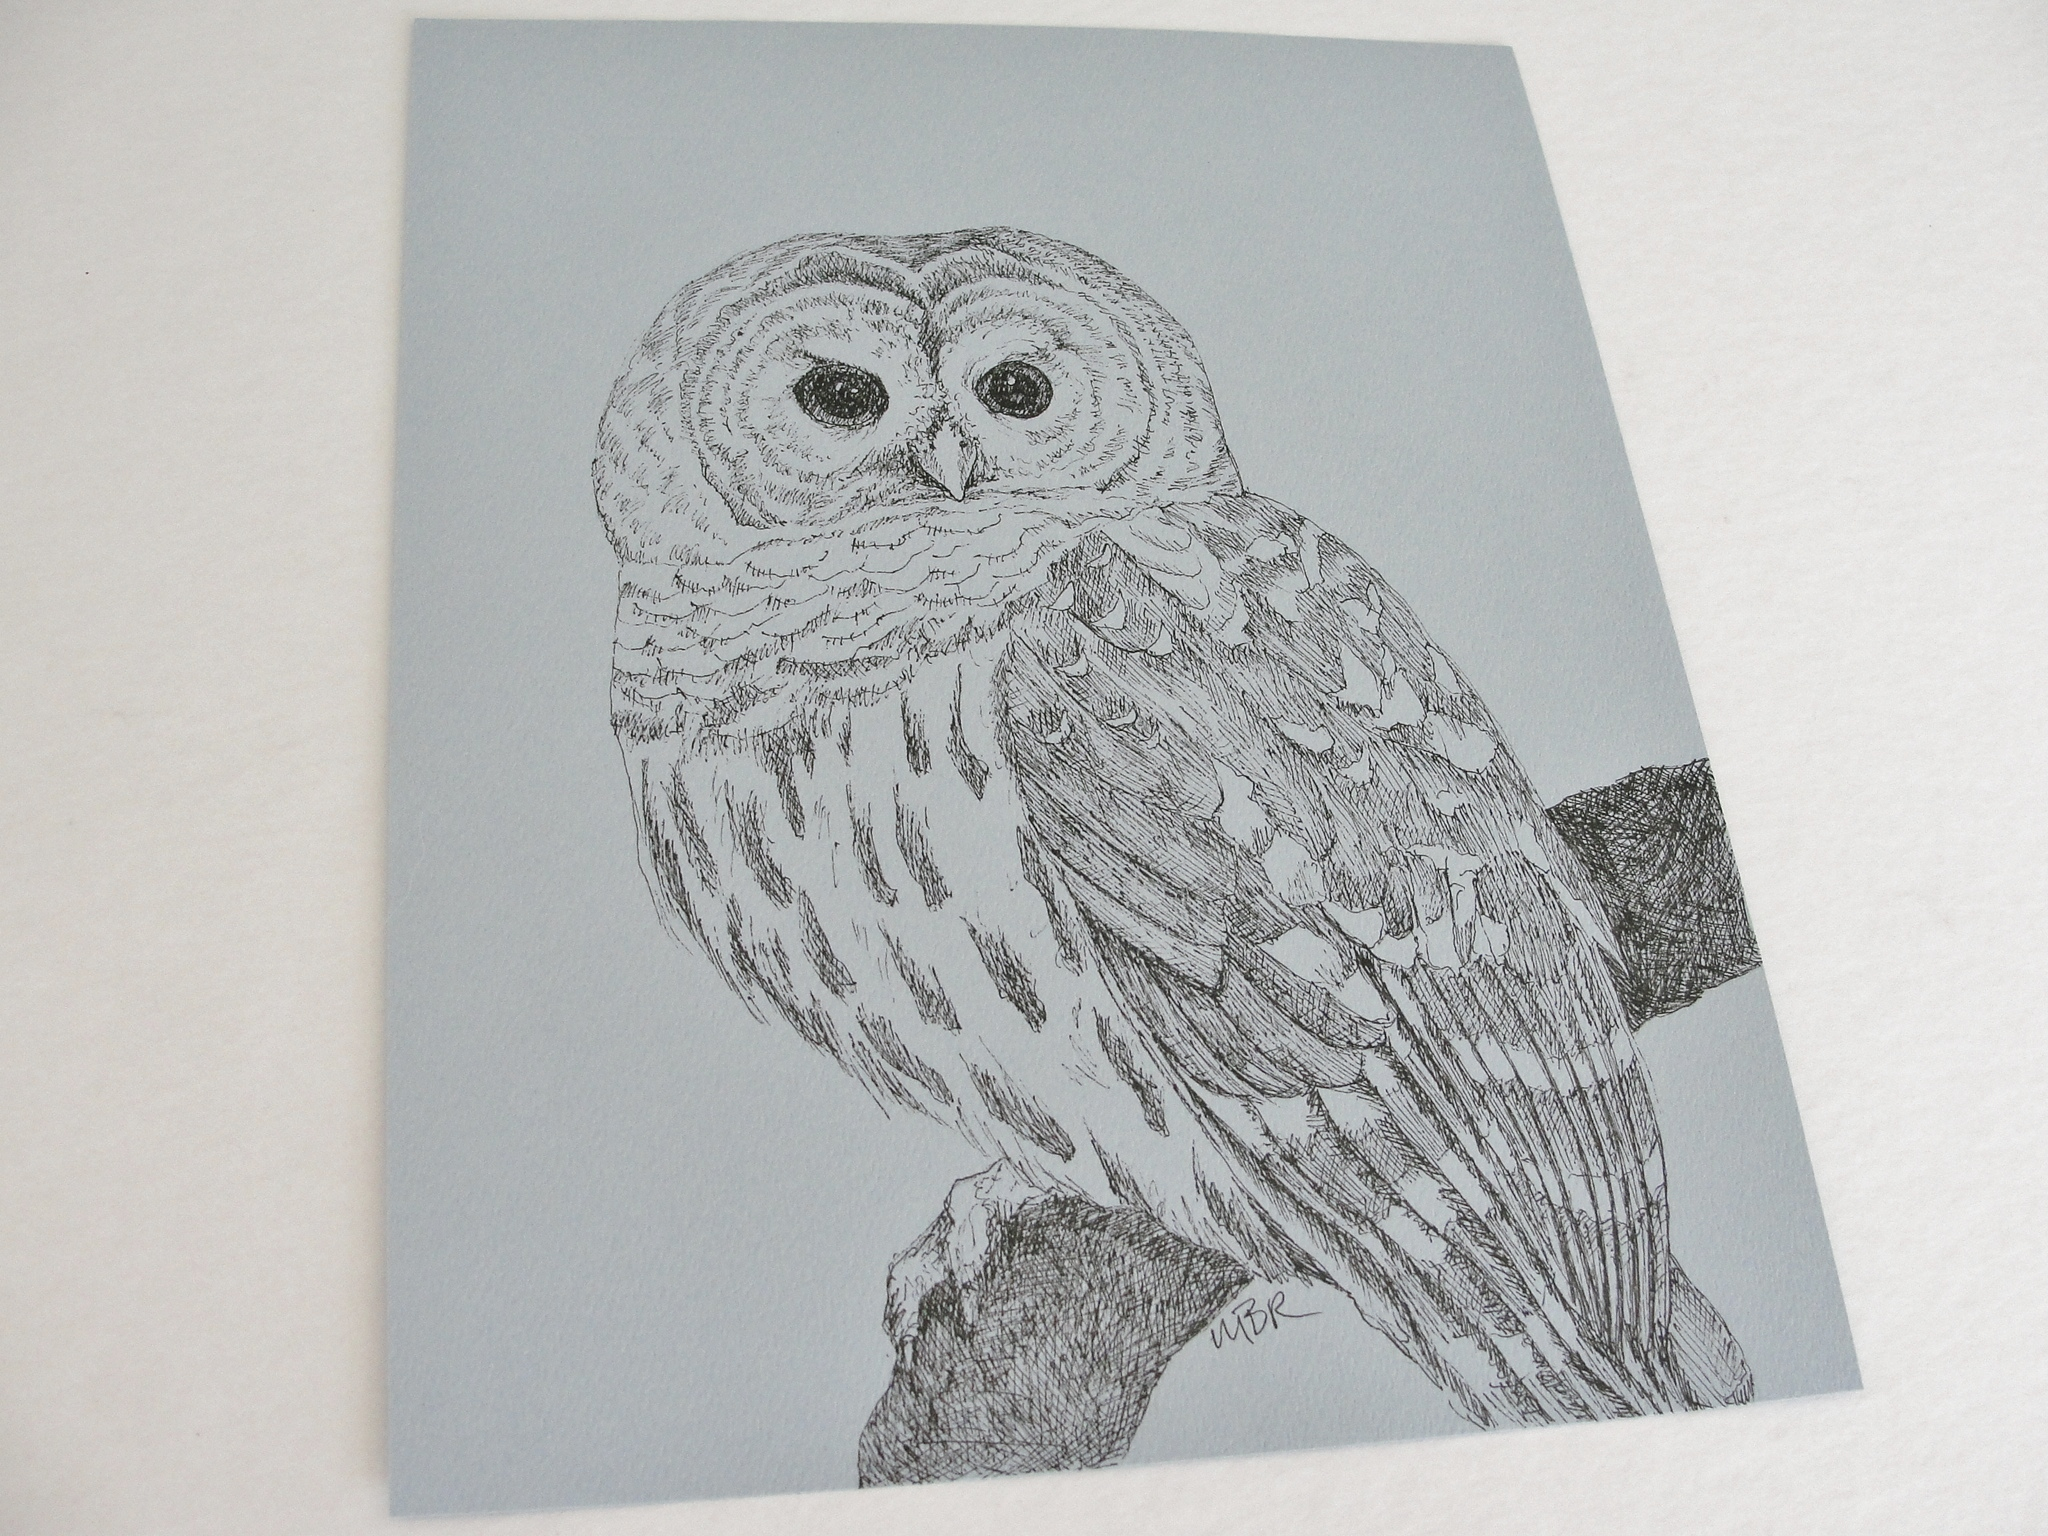 It's just an image of Decisive Barred Owl Drawing